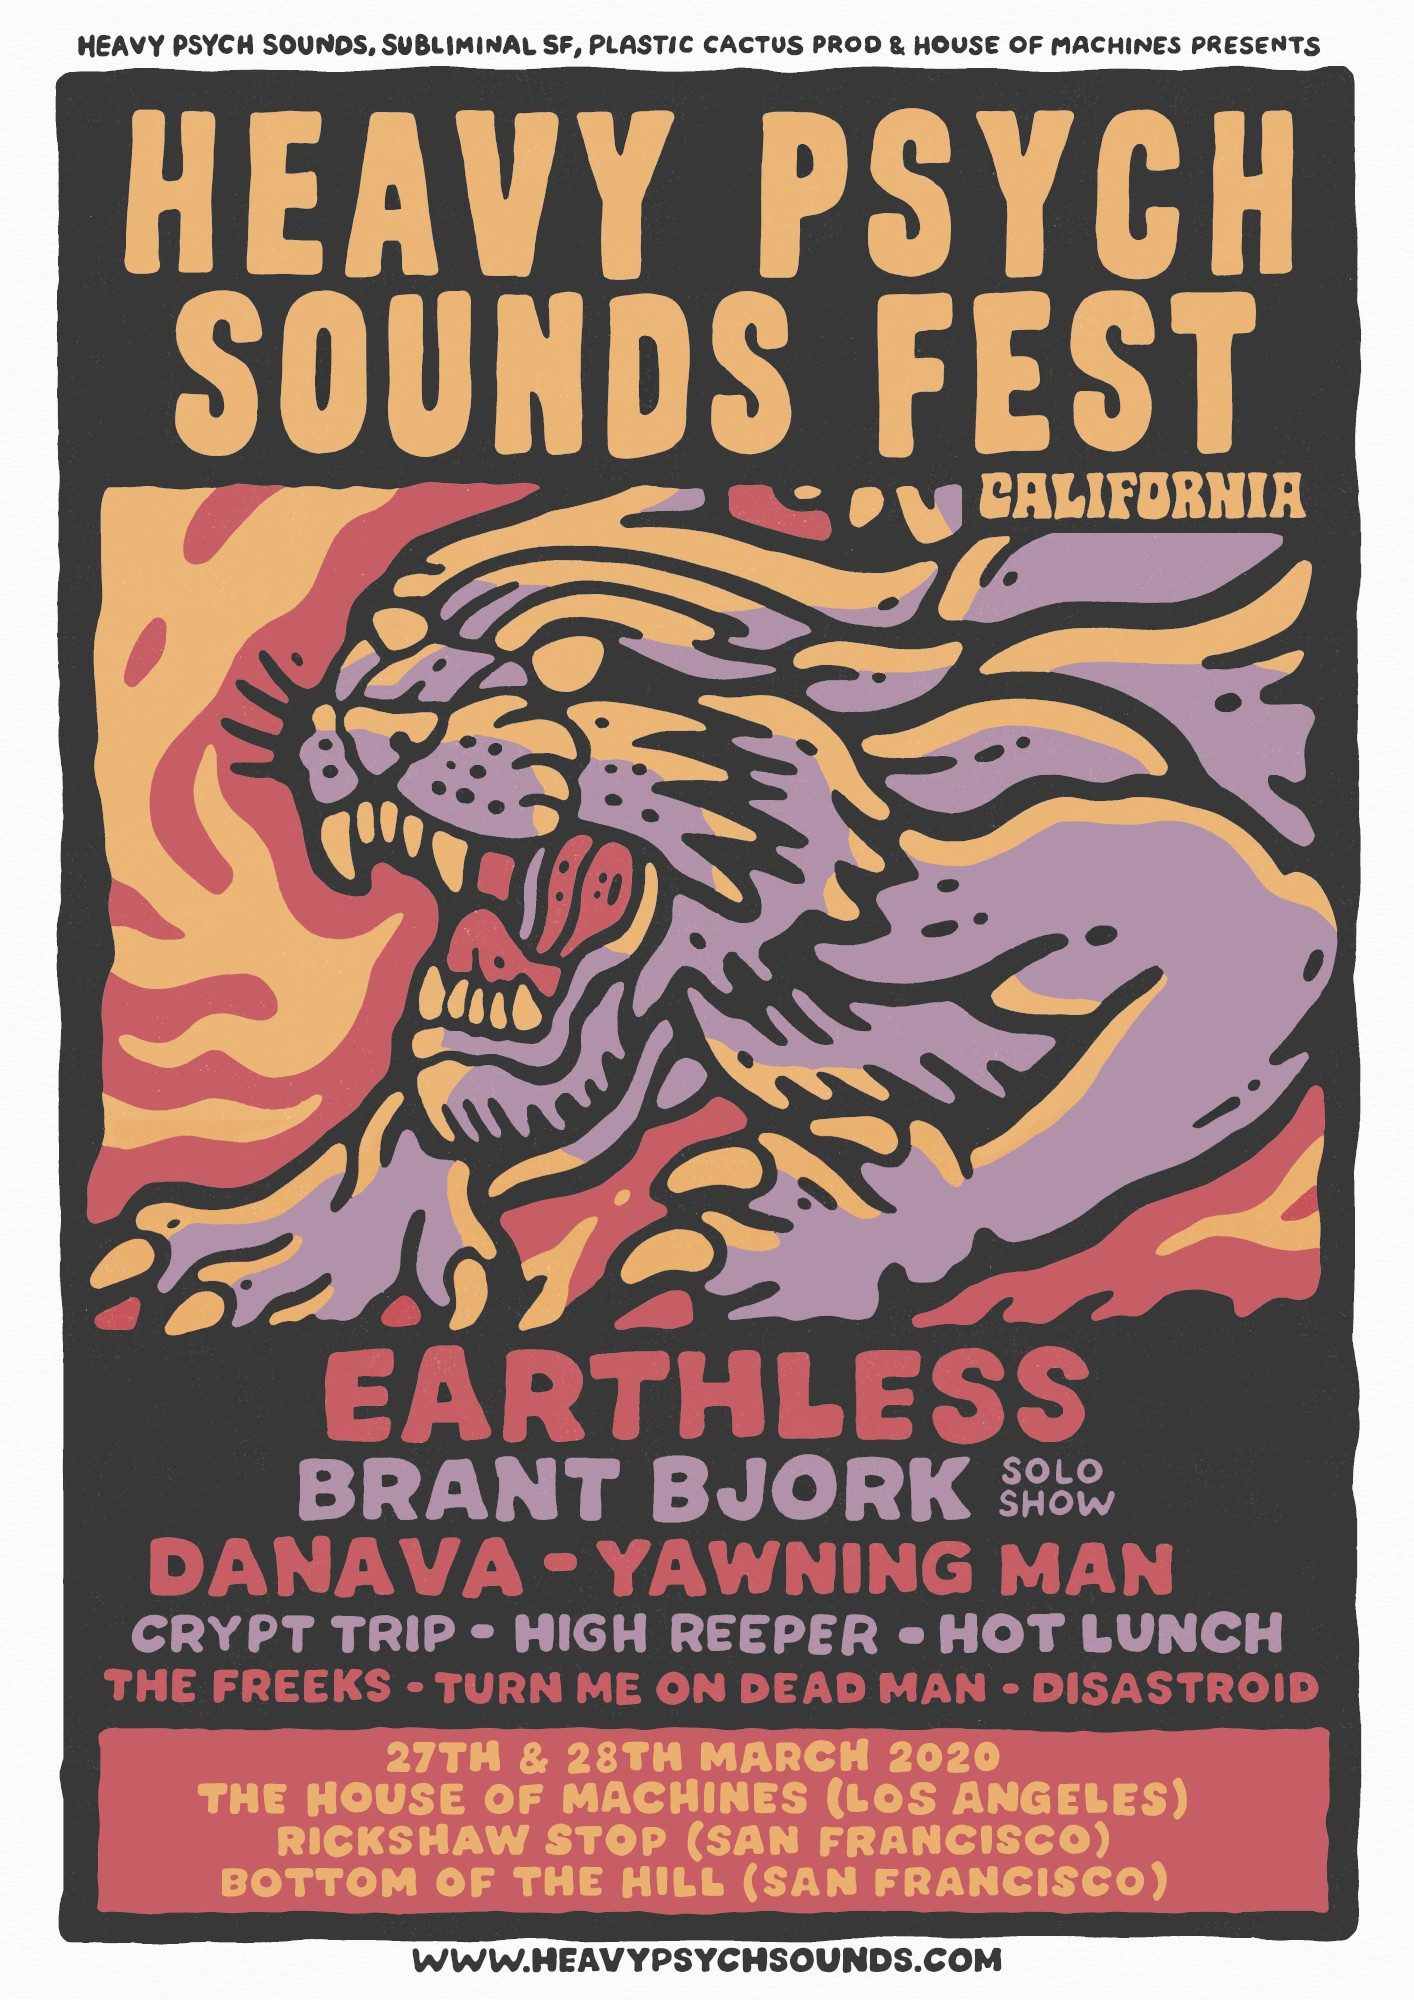 heavy psych sounds fest california 2020 poster